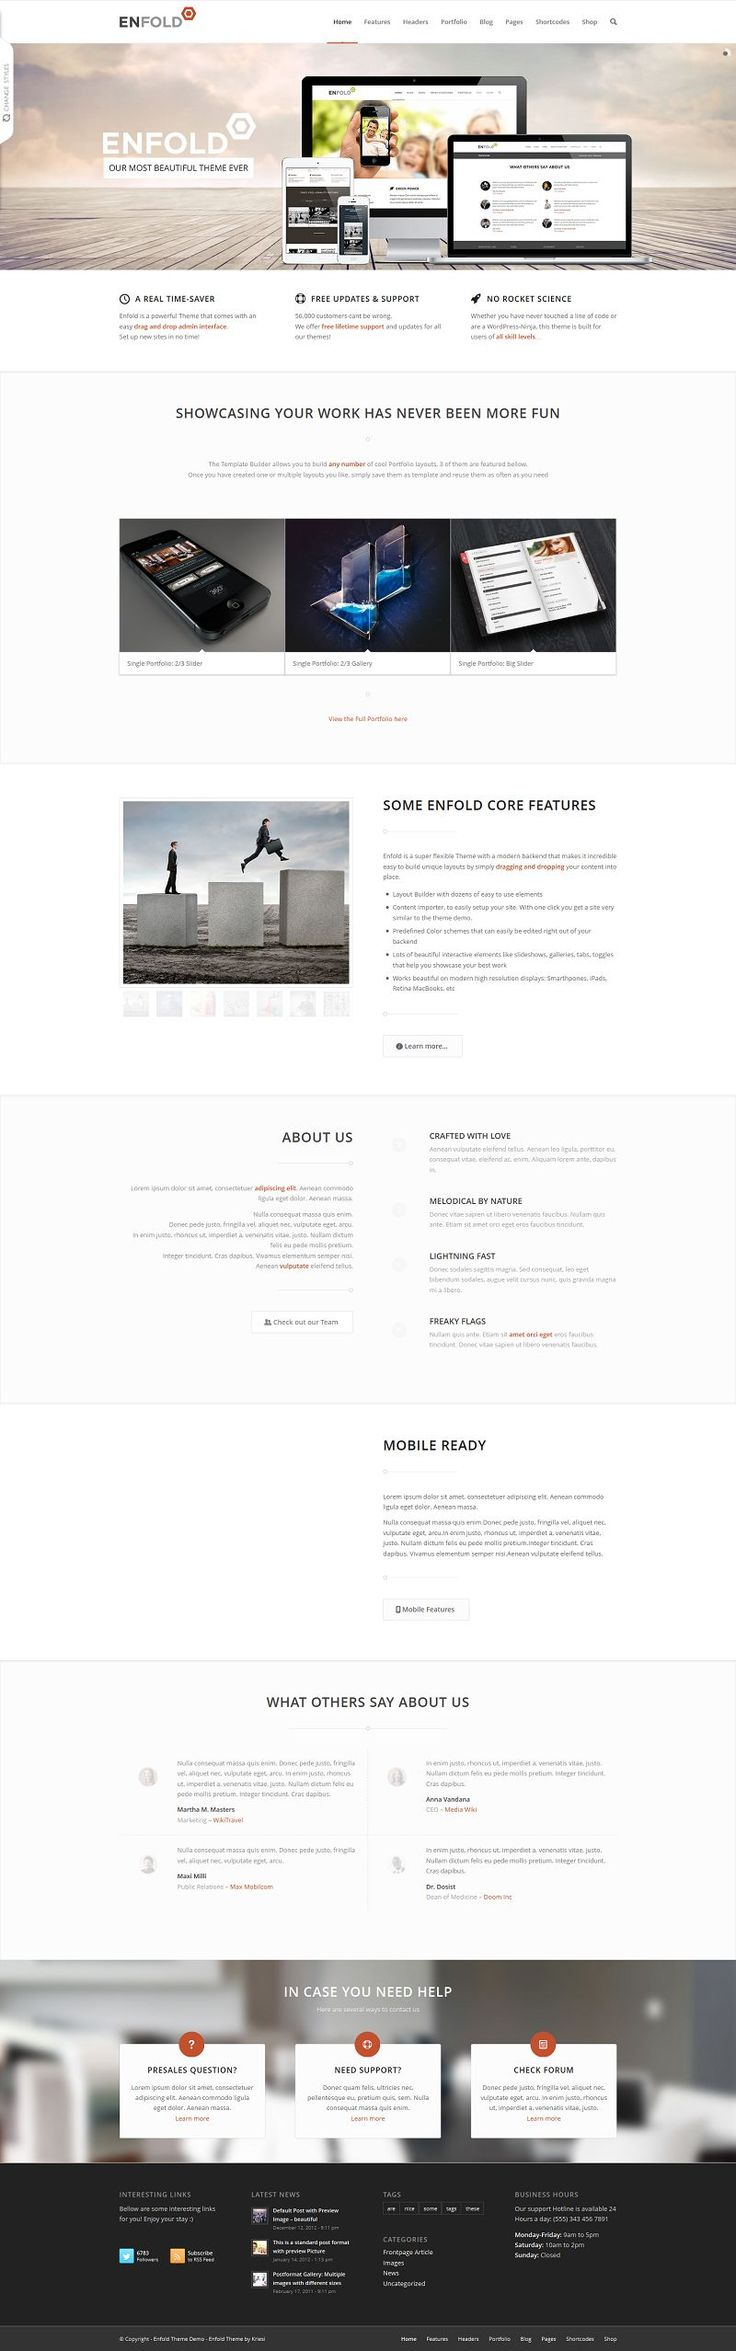 Enfold is a clean, super flexible and fully responsive WordPress Theme (try resizing your browser), suited for business websites, shop websi...